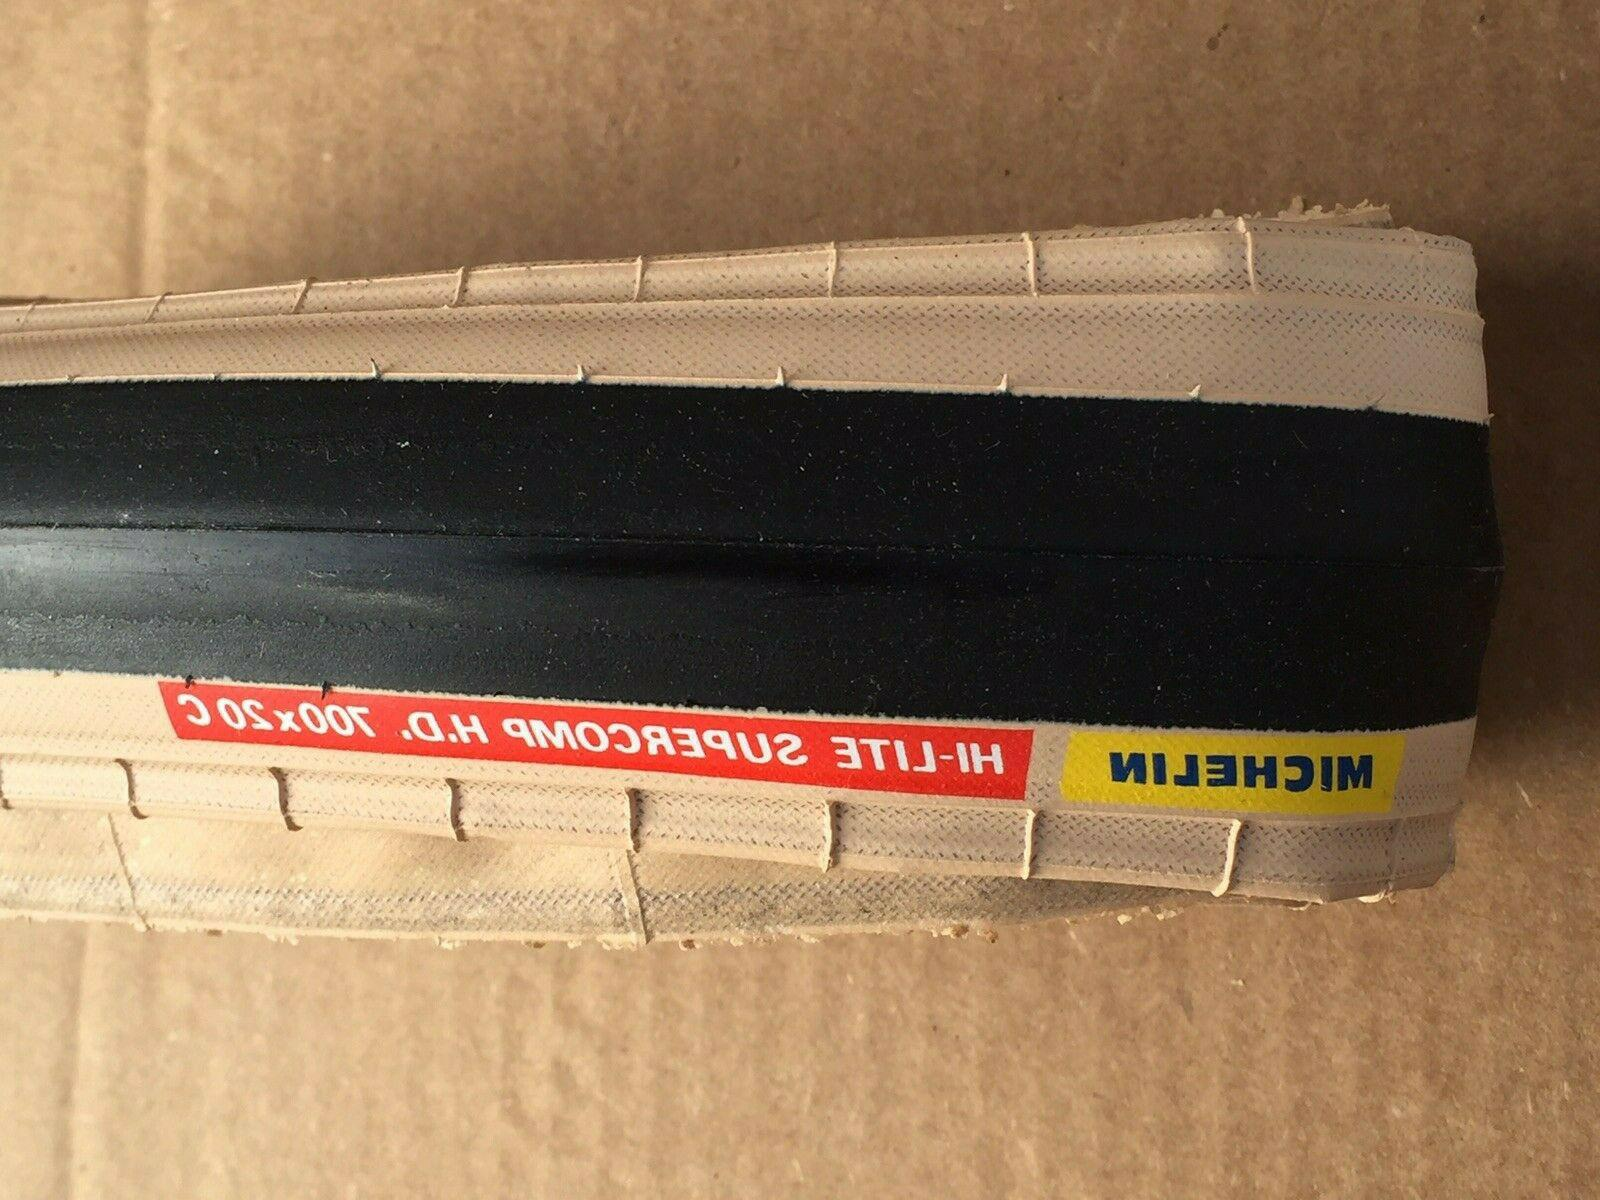 VINTAGE NOS MICHELIN SUPERCOMP CLINCHER BICYCLE TIRE IN BOX